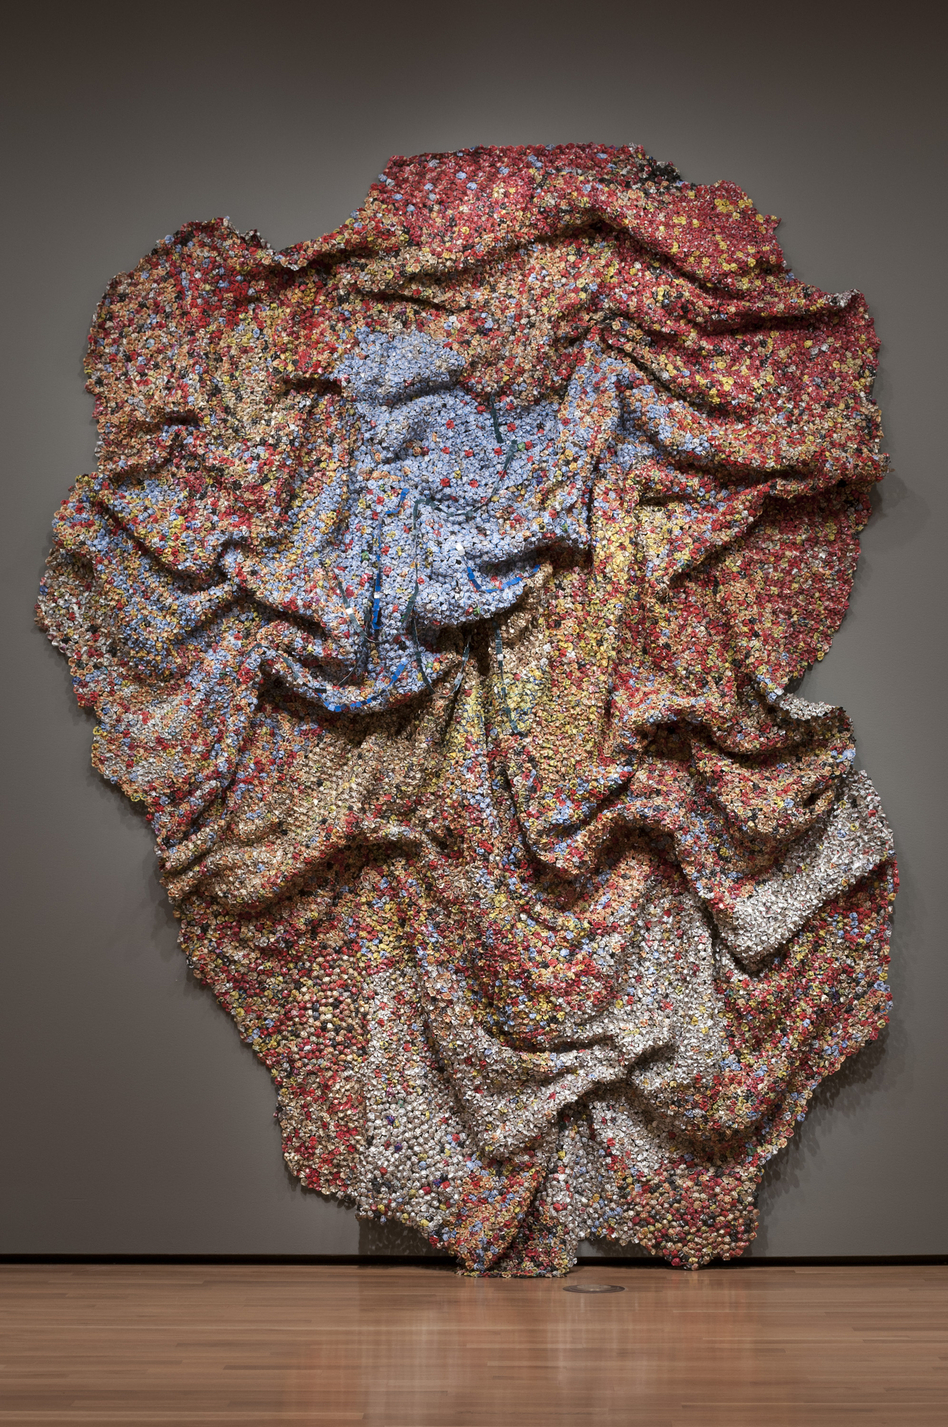 Amemo (Mast of Humankind) by El Anatsui, 2010. (Courtesy the artist, Jack Shainman Gallery, New York, and the Akron Art Museum)